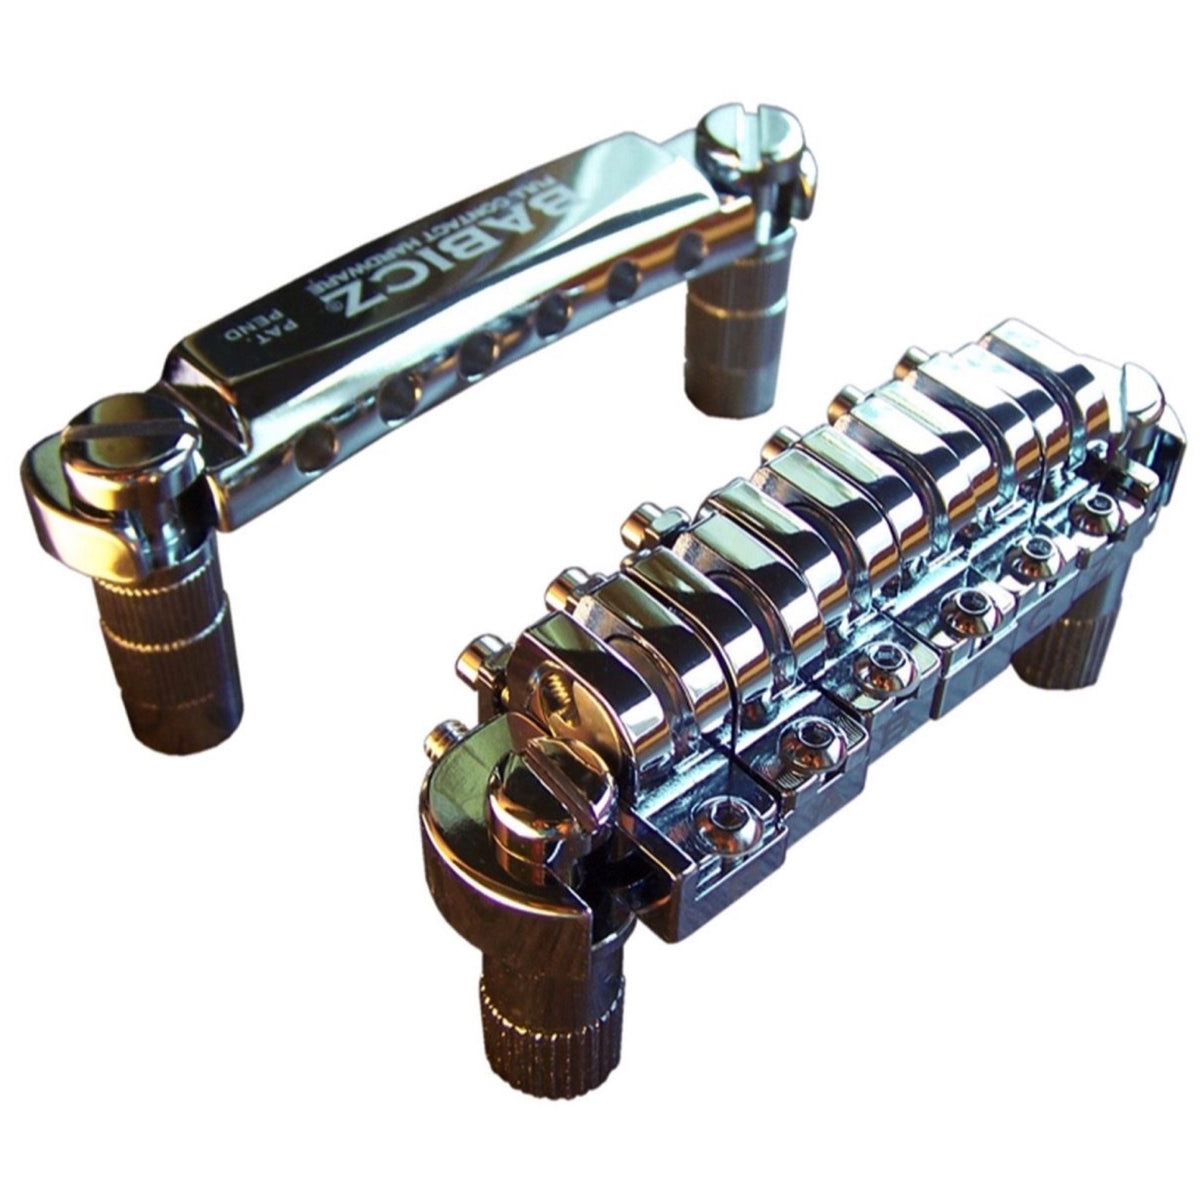 Babicz Full Contact Hardware Tune-O-Matic Bridge and Tailpiece, Chrome